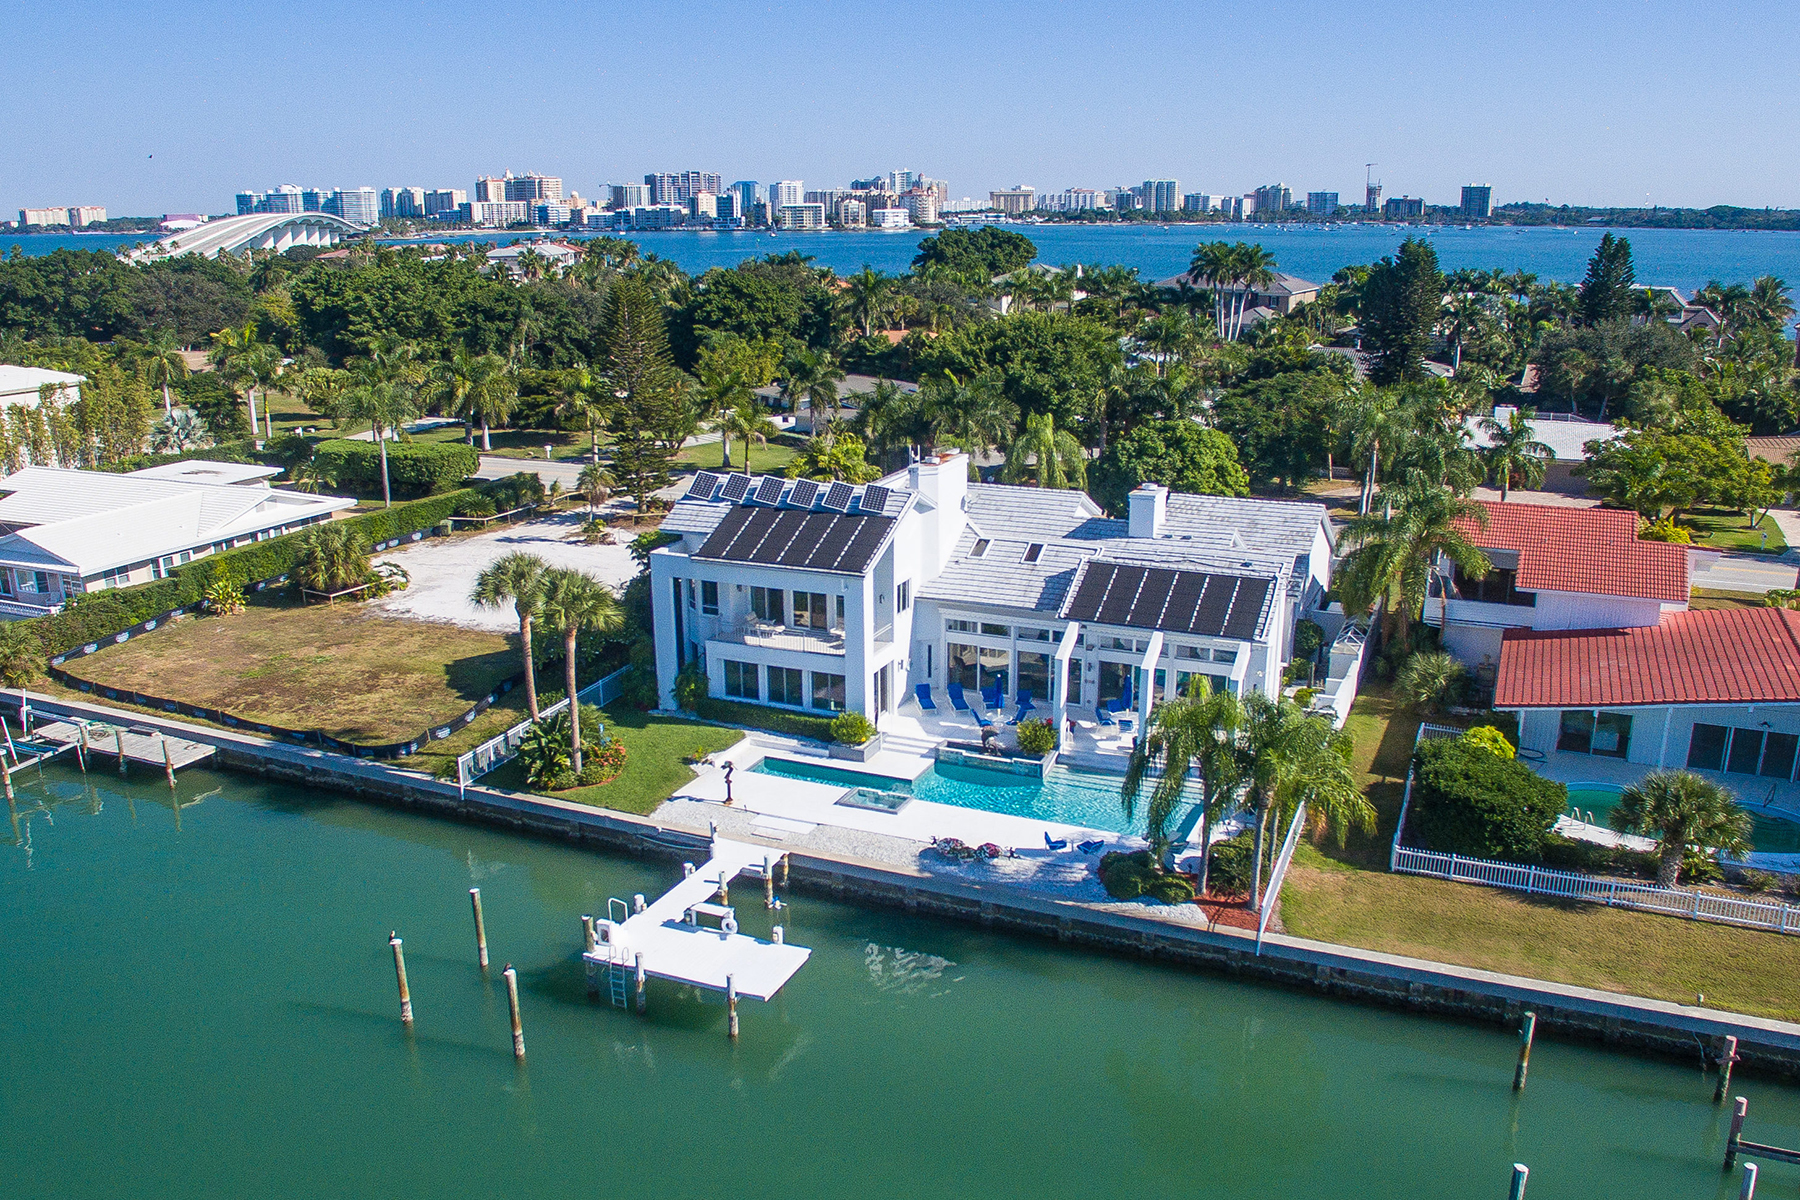 Single Family Home for Sale at BIRD KEY 216 Bird Key Dr Bird Key, Sarasota, Florida, 34236 United States